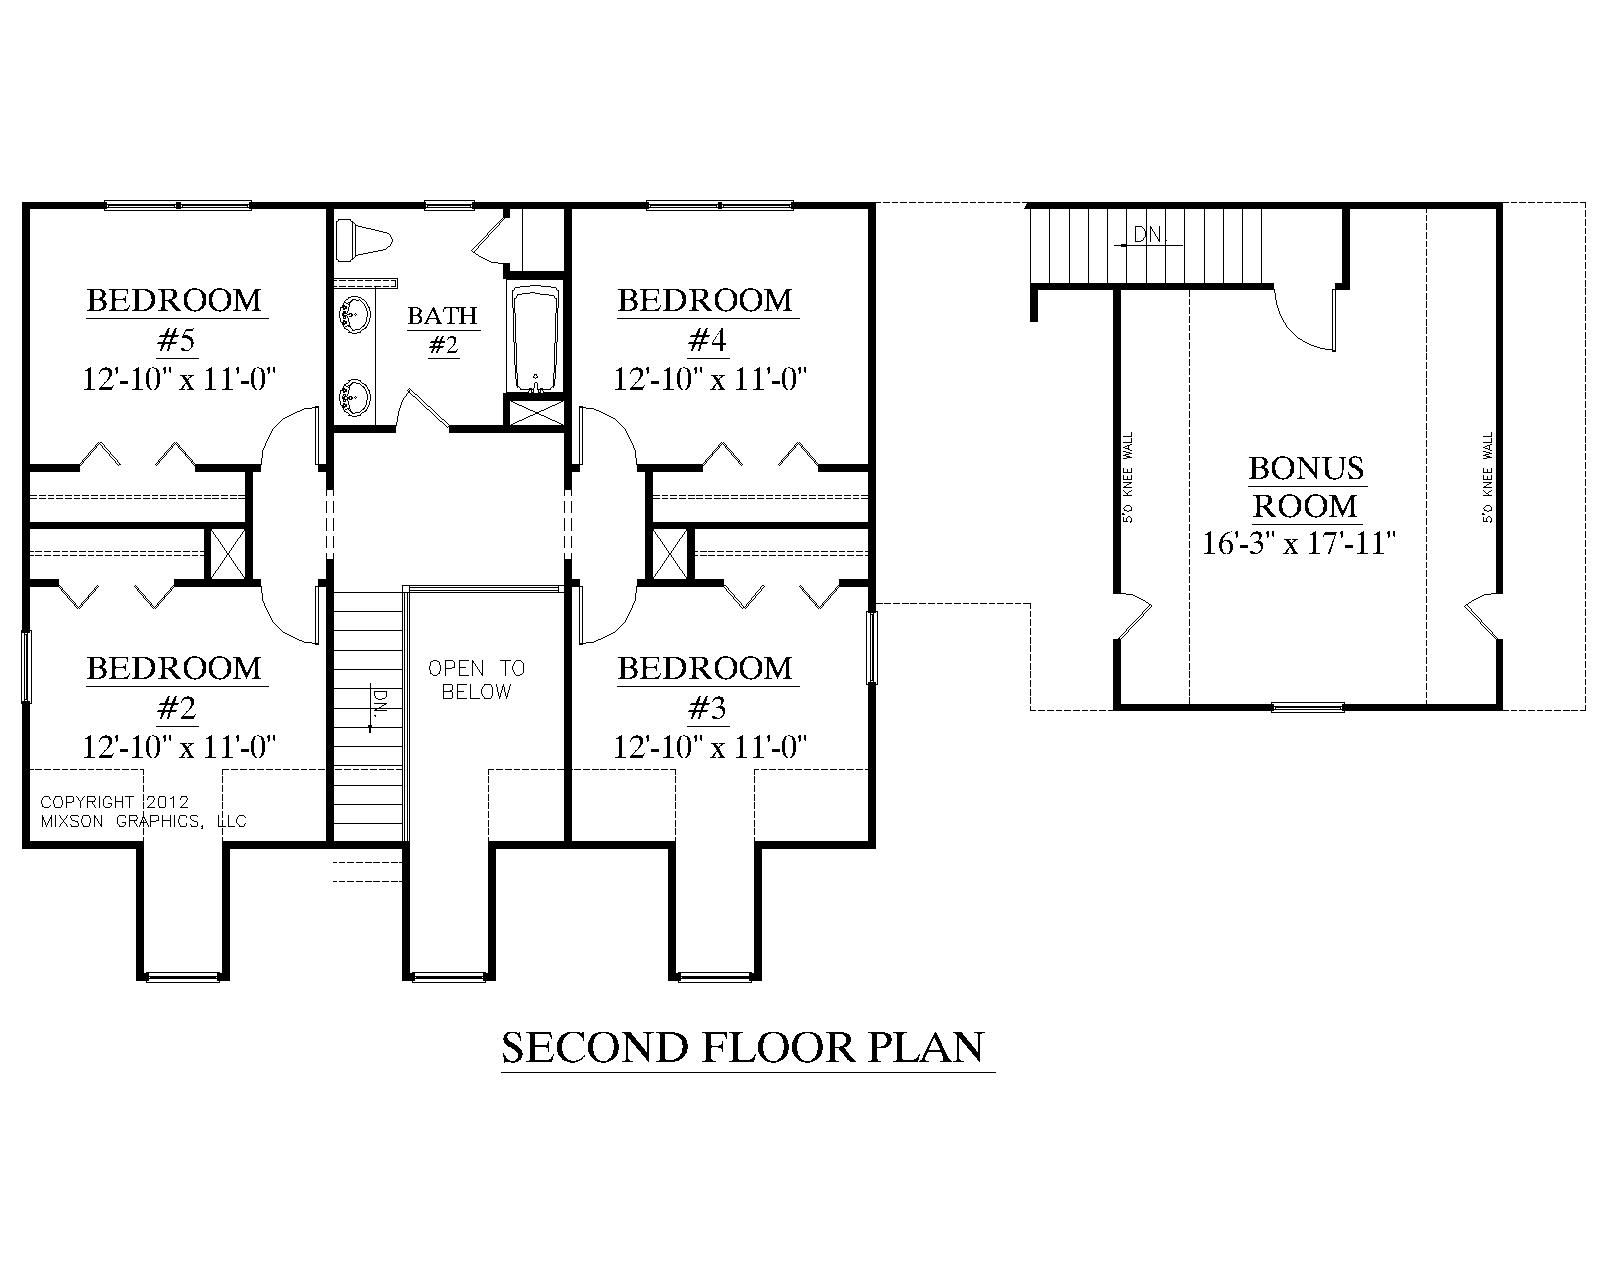 House Plan 2341 A Montgomery A Second Floor Plan Traditional 1 1 2 Story House Plan With 5